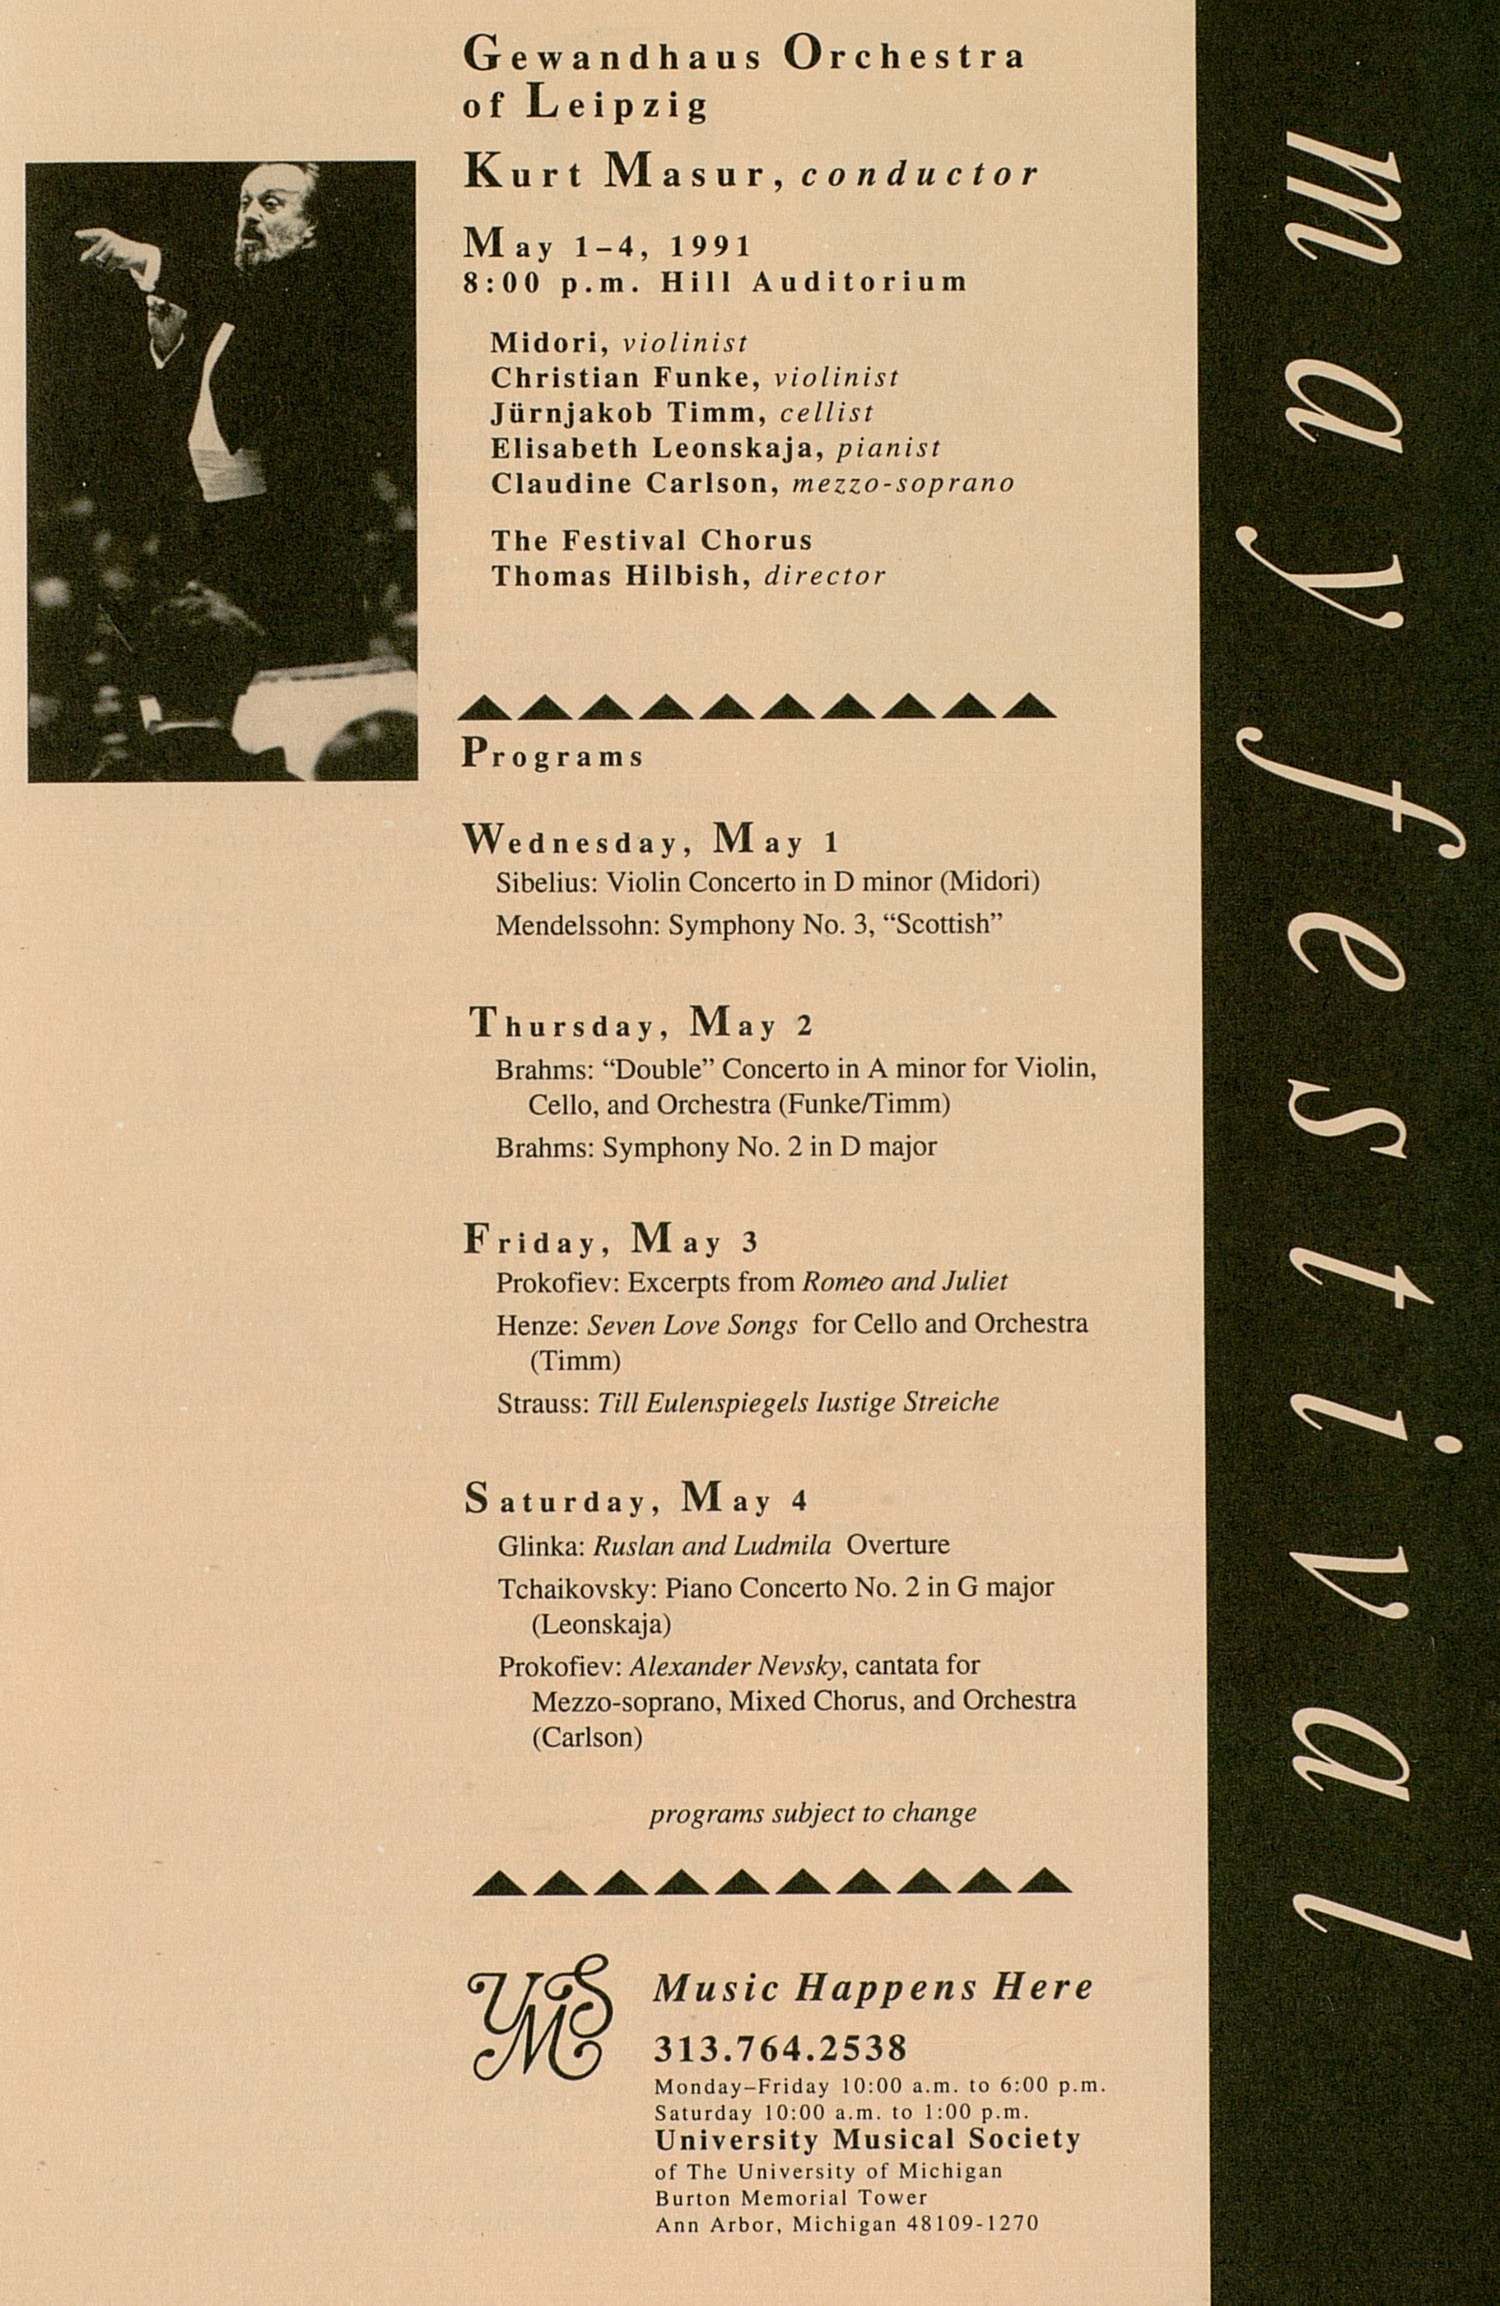 UMS Concert Program, April 20, 1991: University Musical Society -- Butch Thompson And The Butch Thompson Trio image